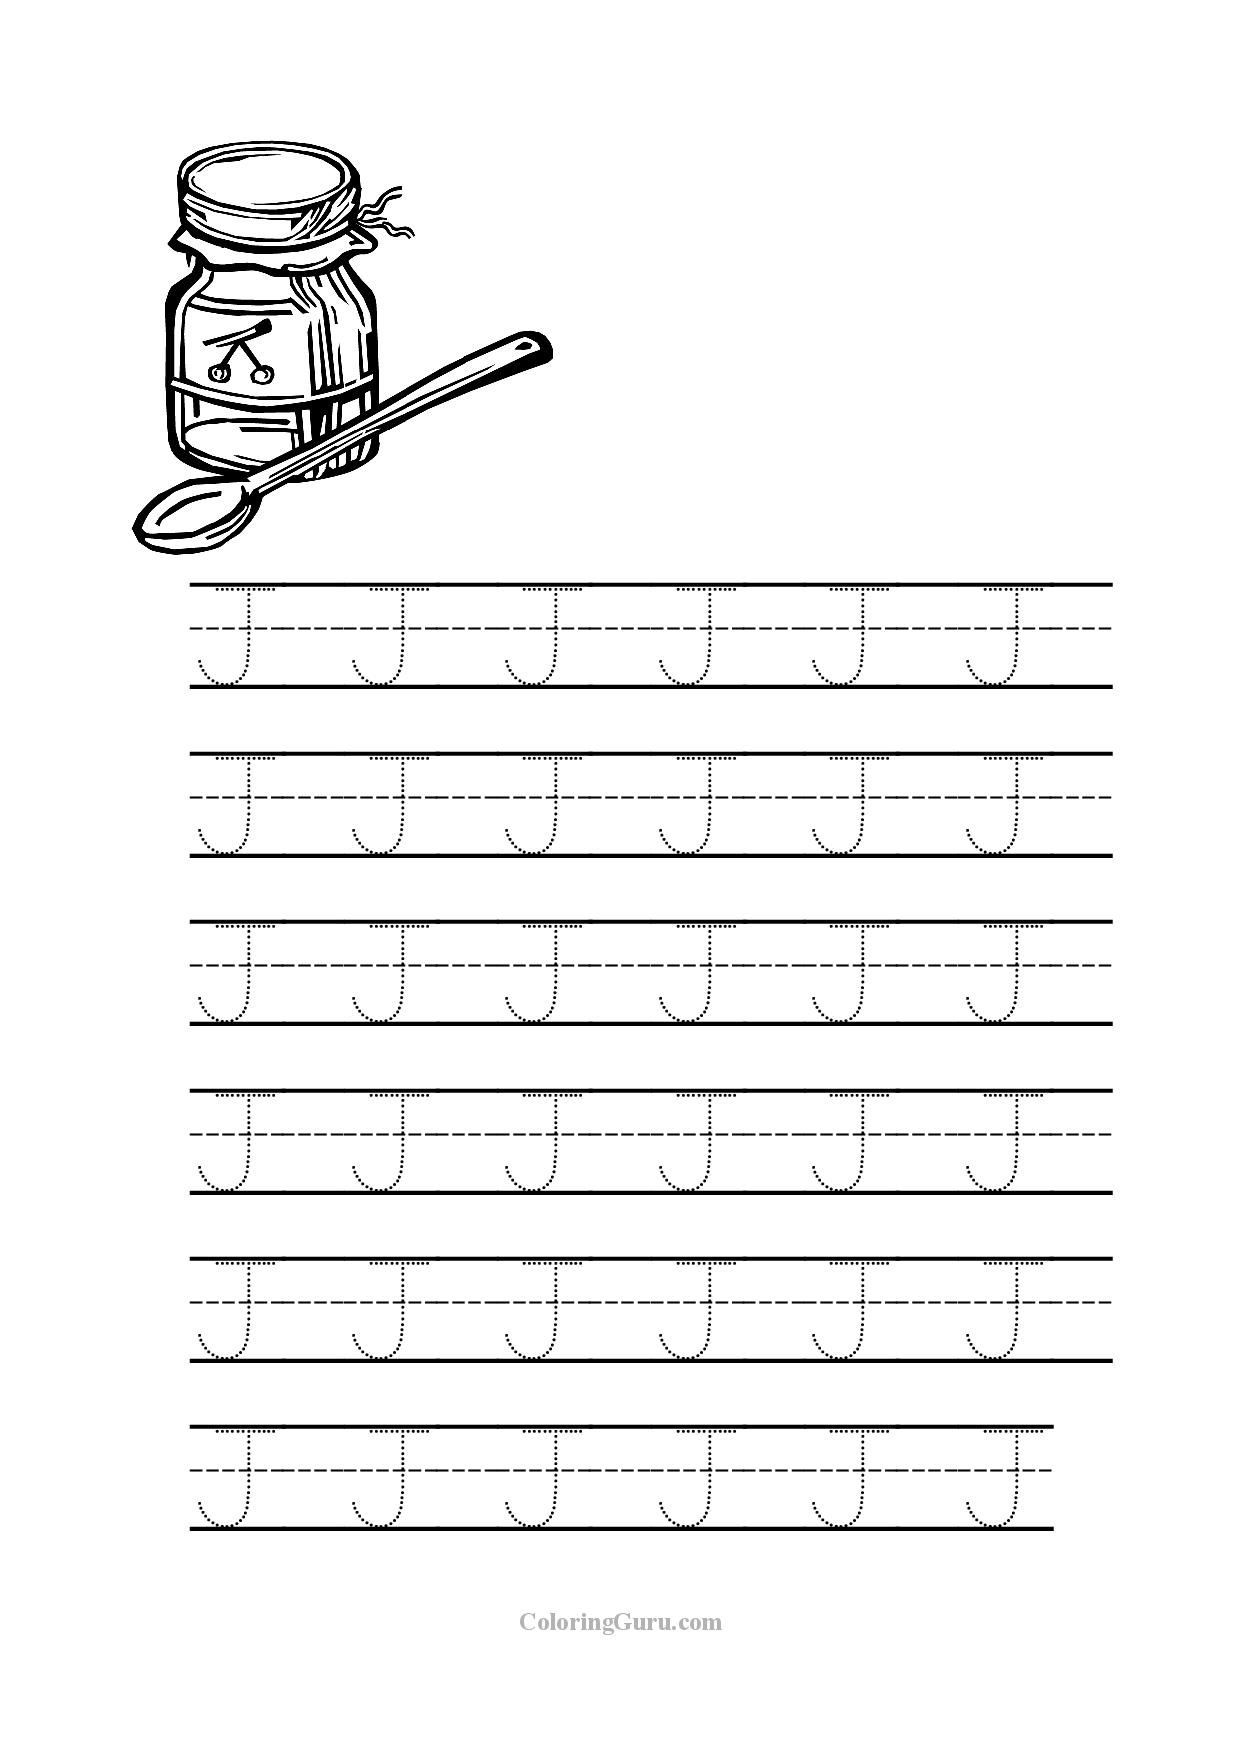 Letter J Tracing Worksheets Preschool Free Printable Tracing Letter J Worksheets for Preschool